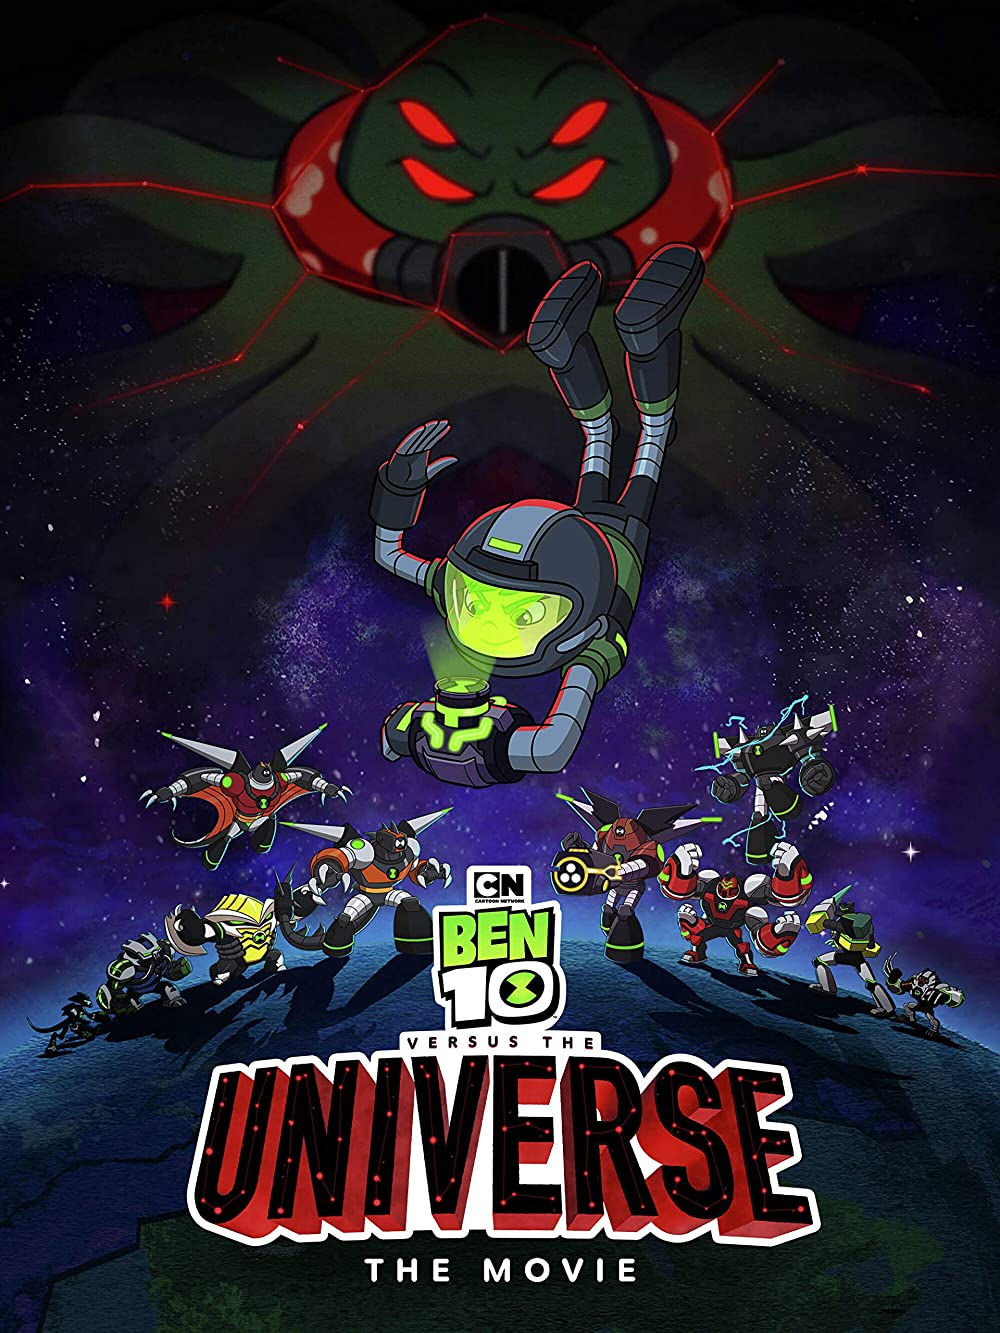 Watch Ben 10 vs. the Universe: The Movie Online